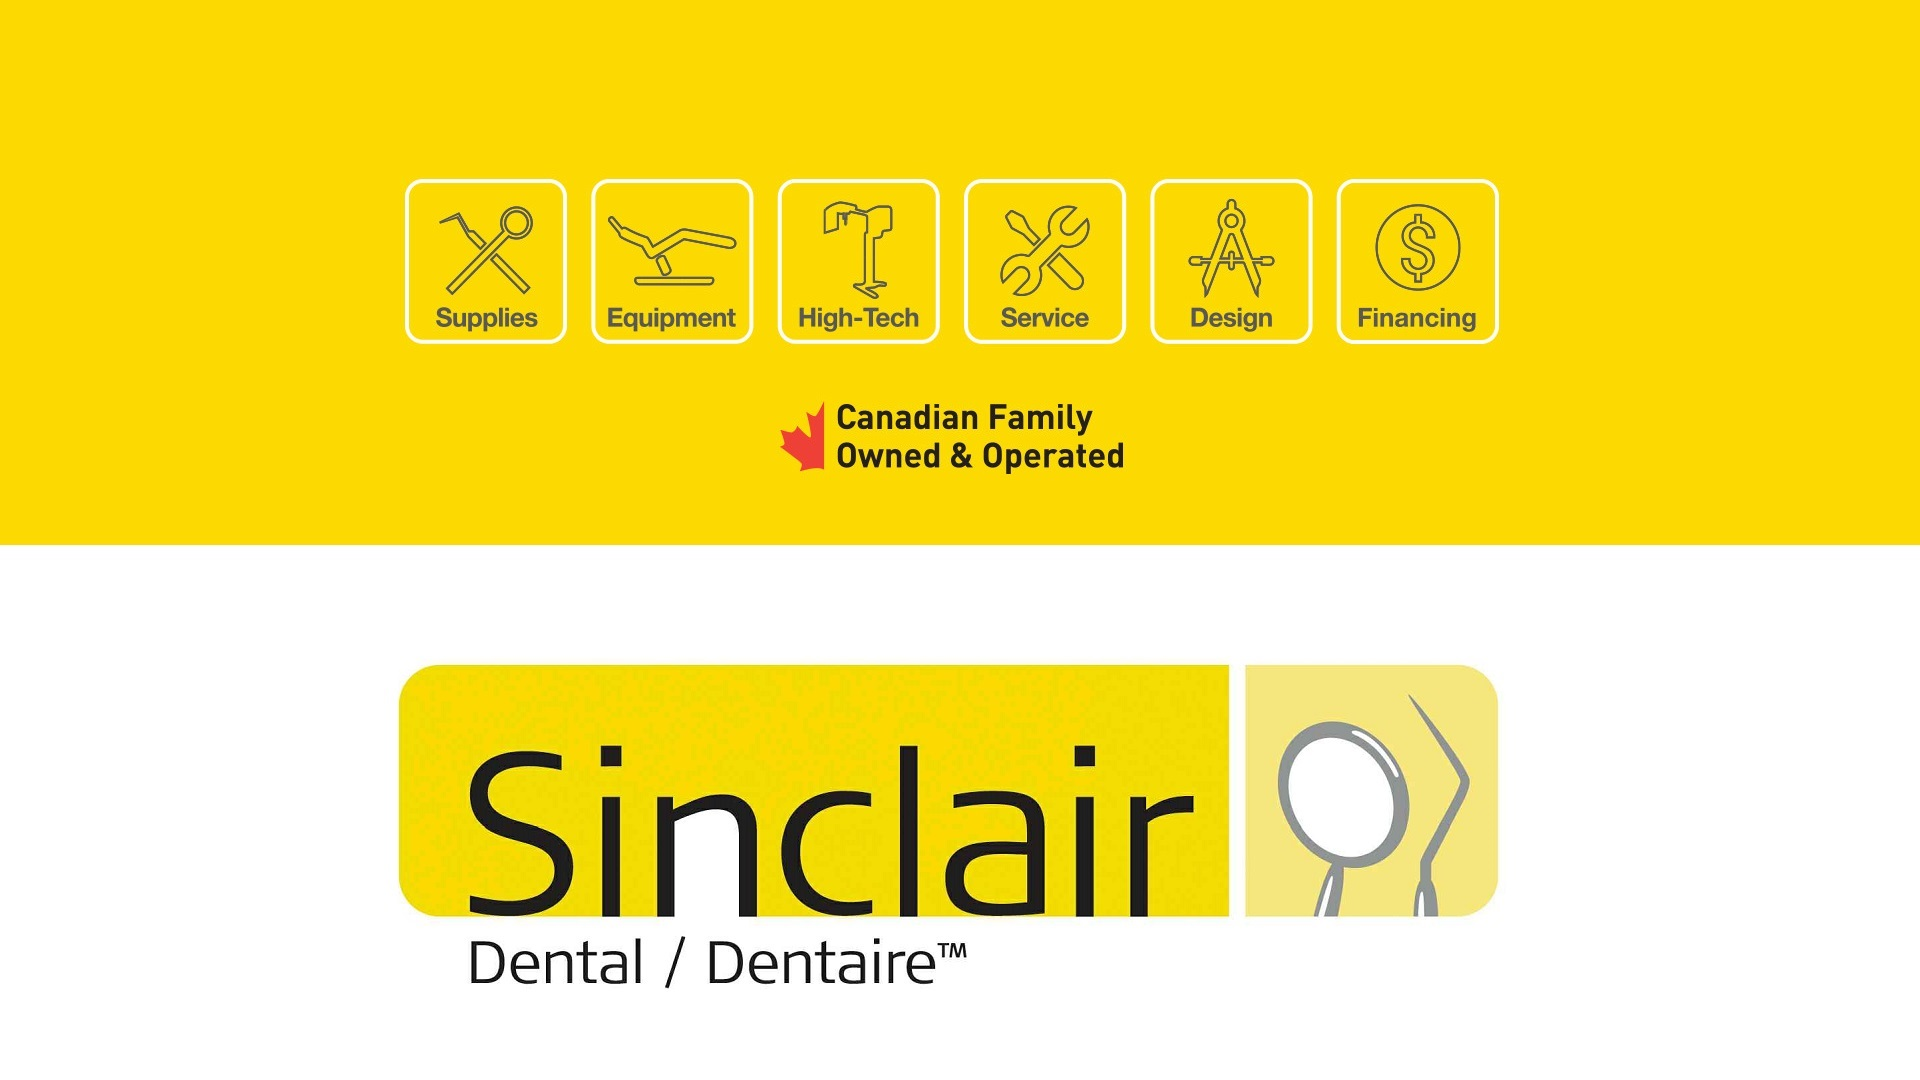 sinclair dental 2